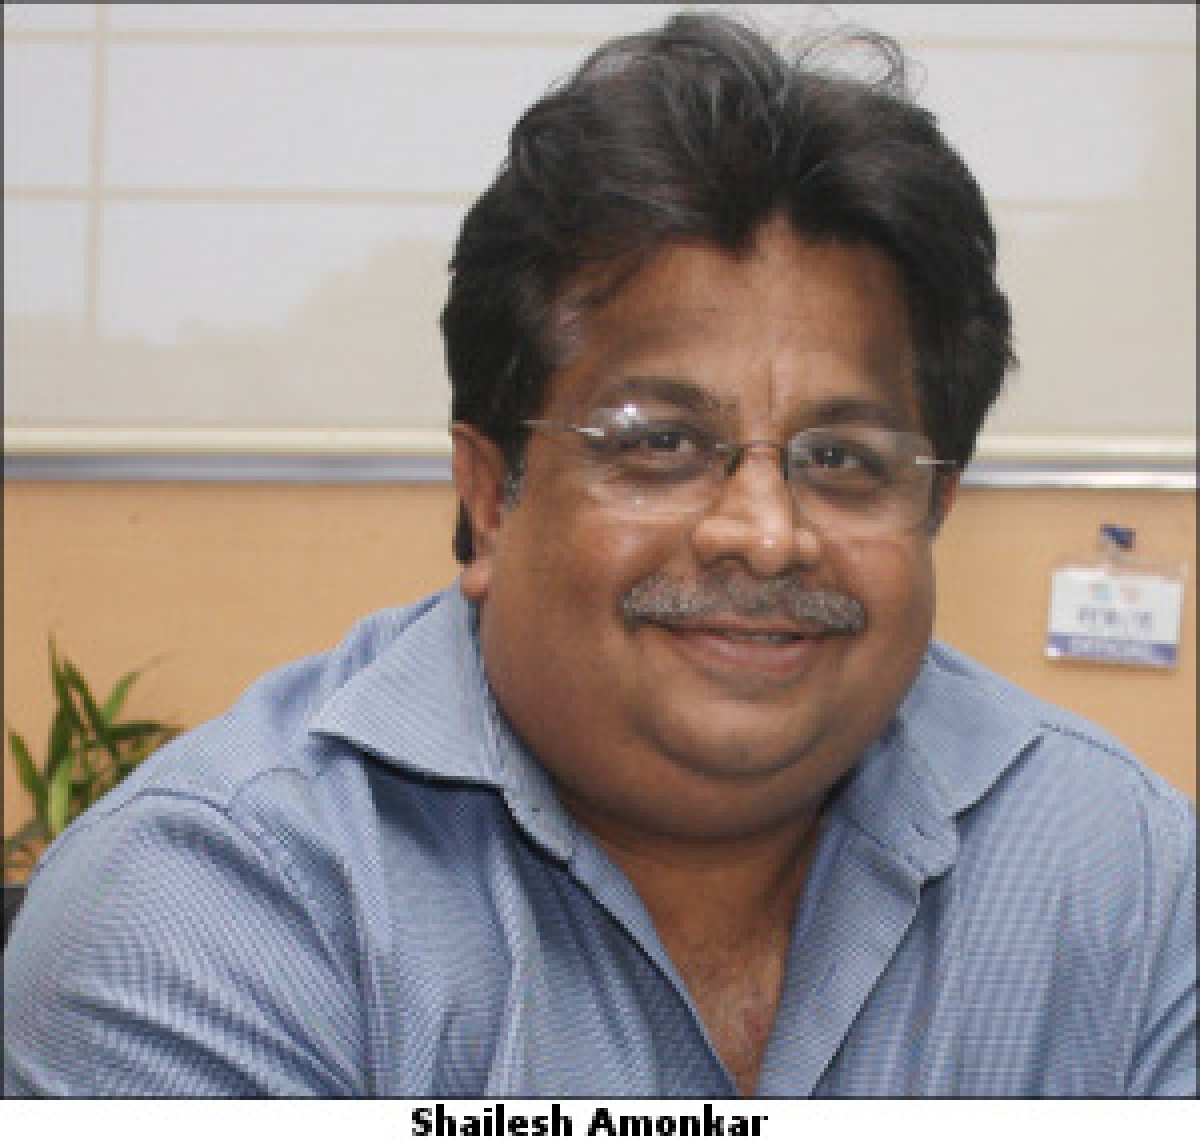 Sakal Media Group's Shailesh Amonkar resigns